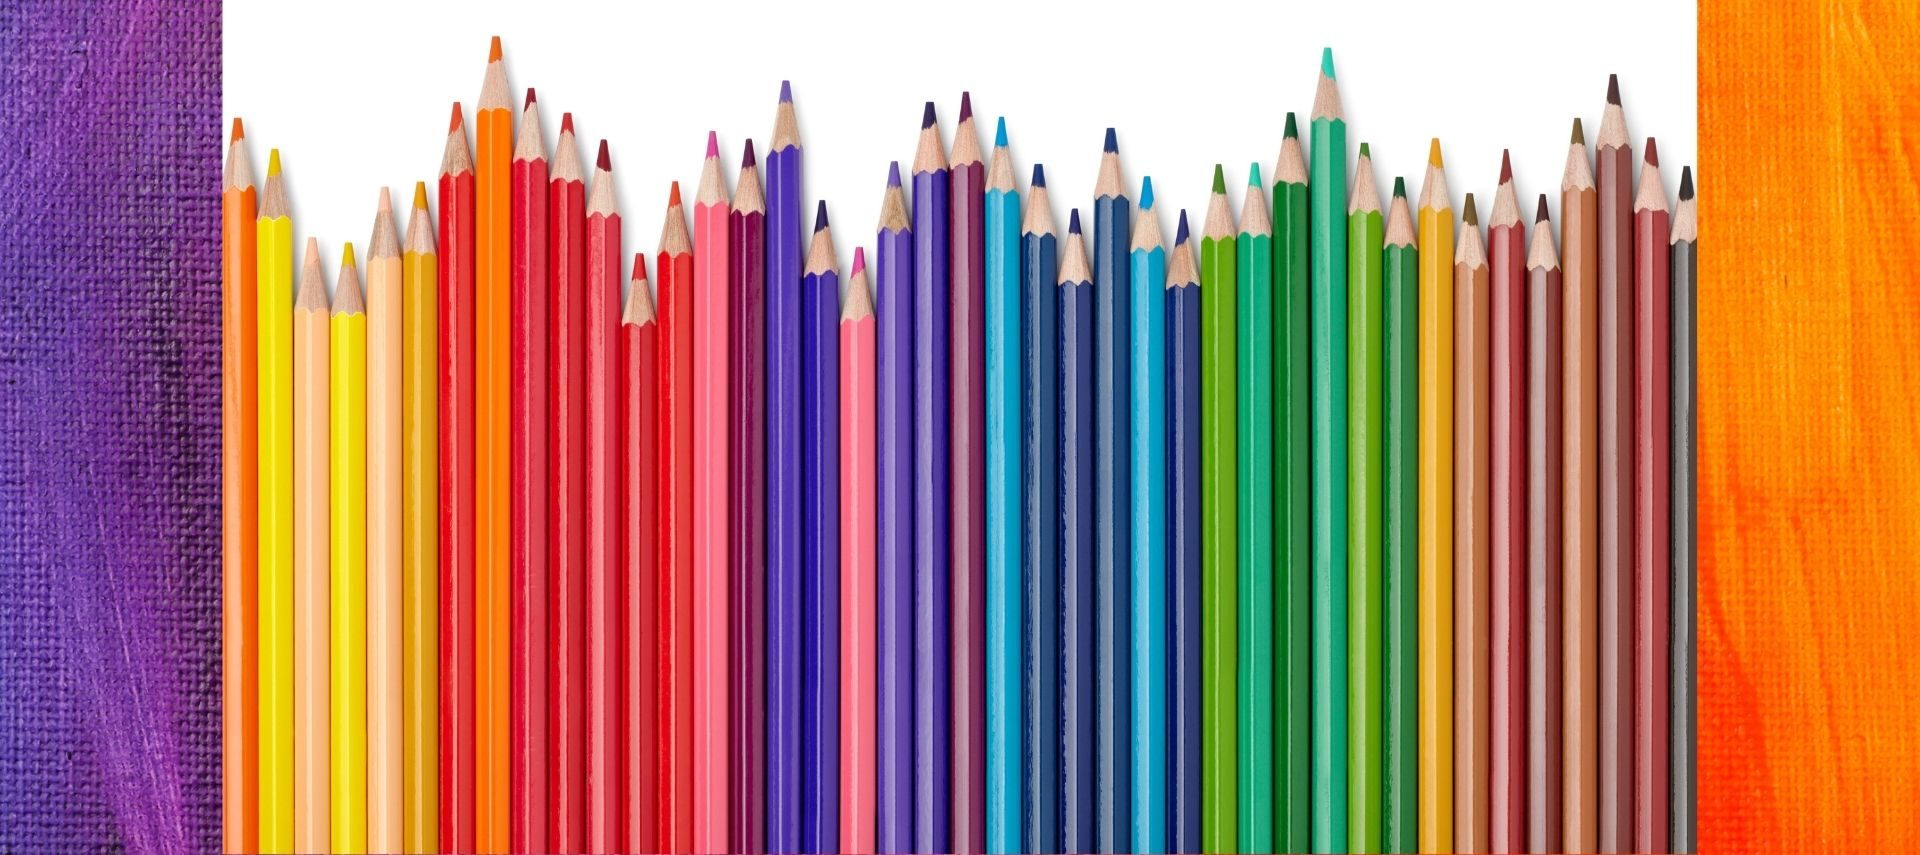 Colored pencils in a row of varying heights in a rainbow of colors